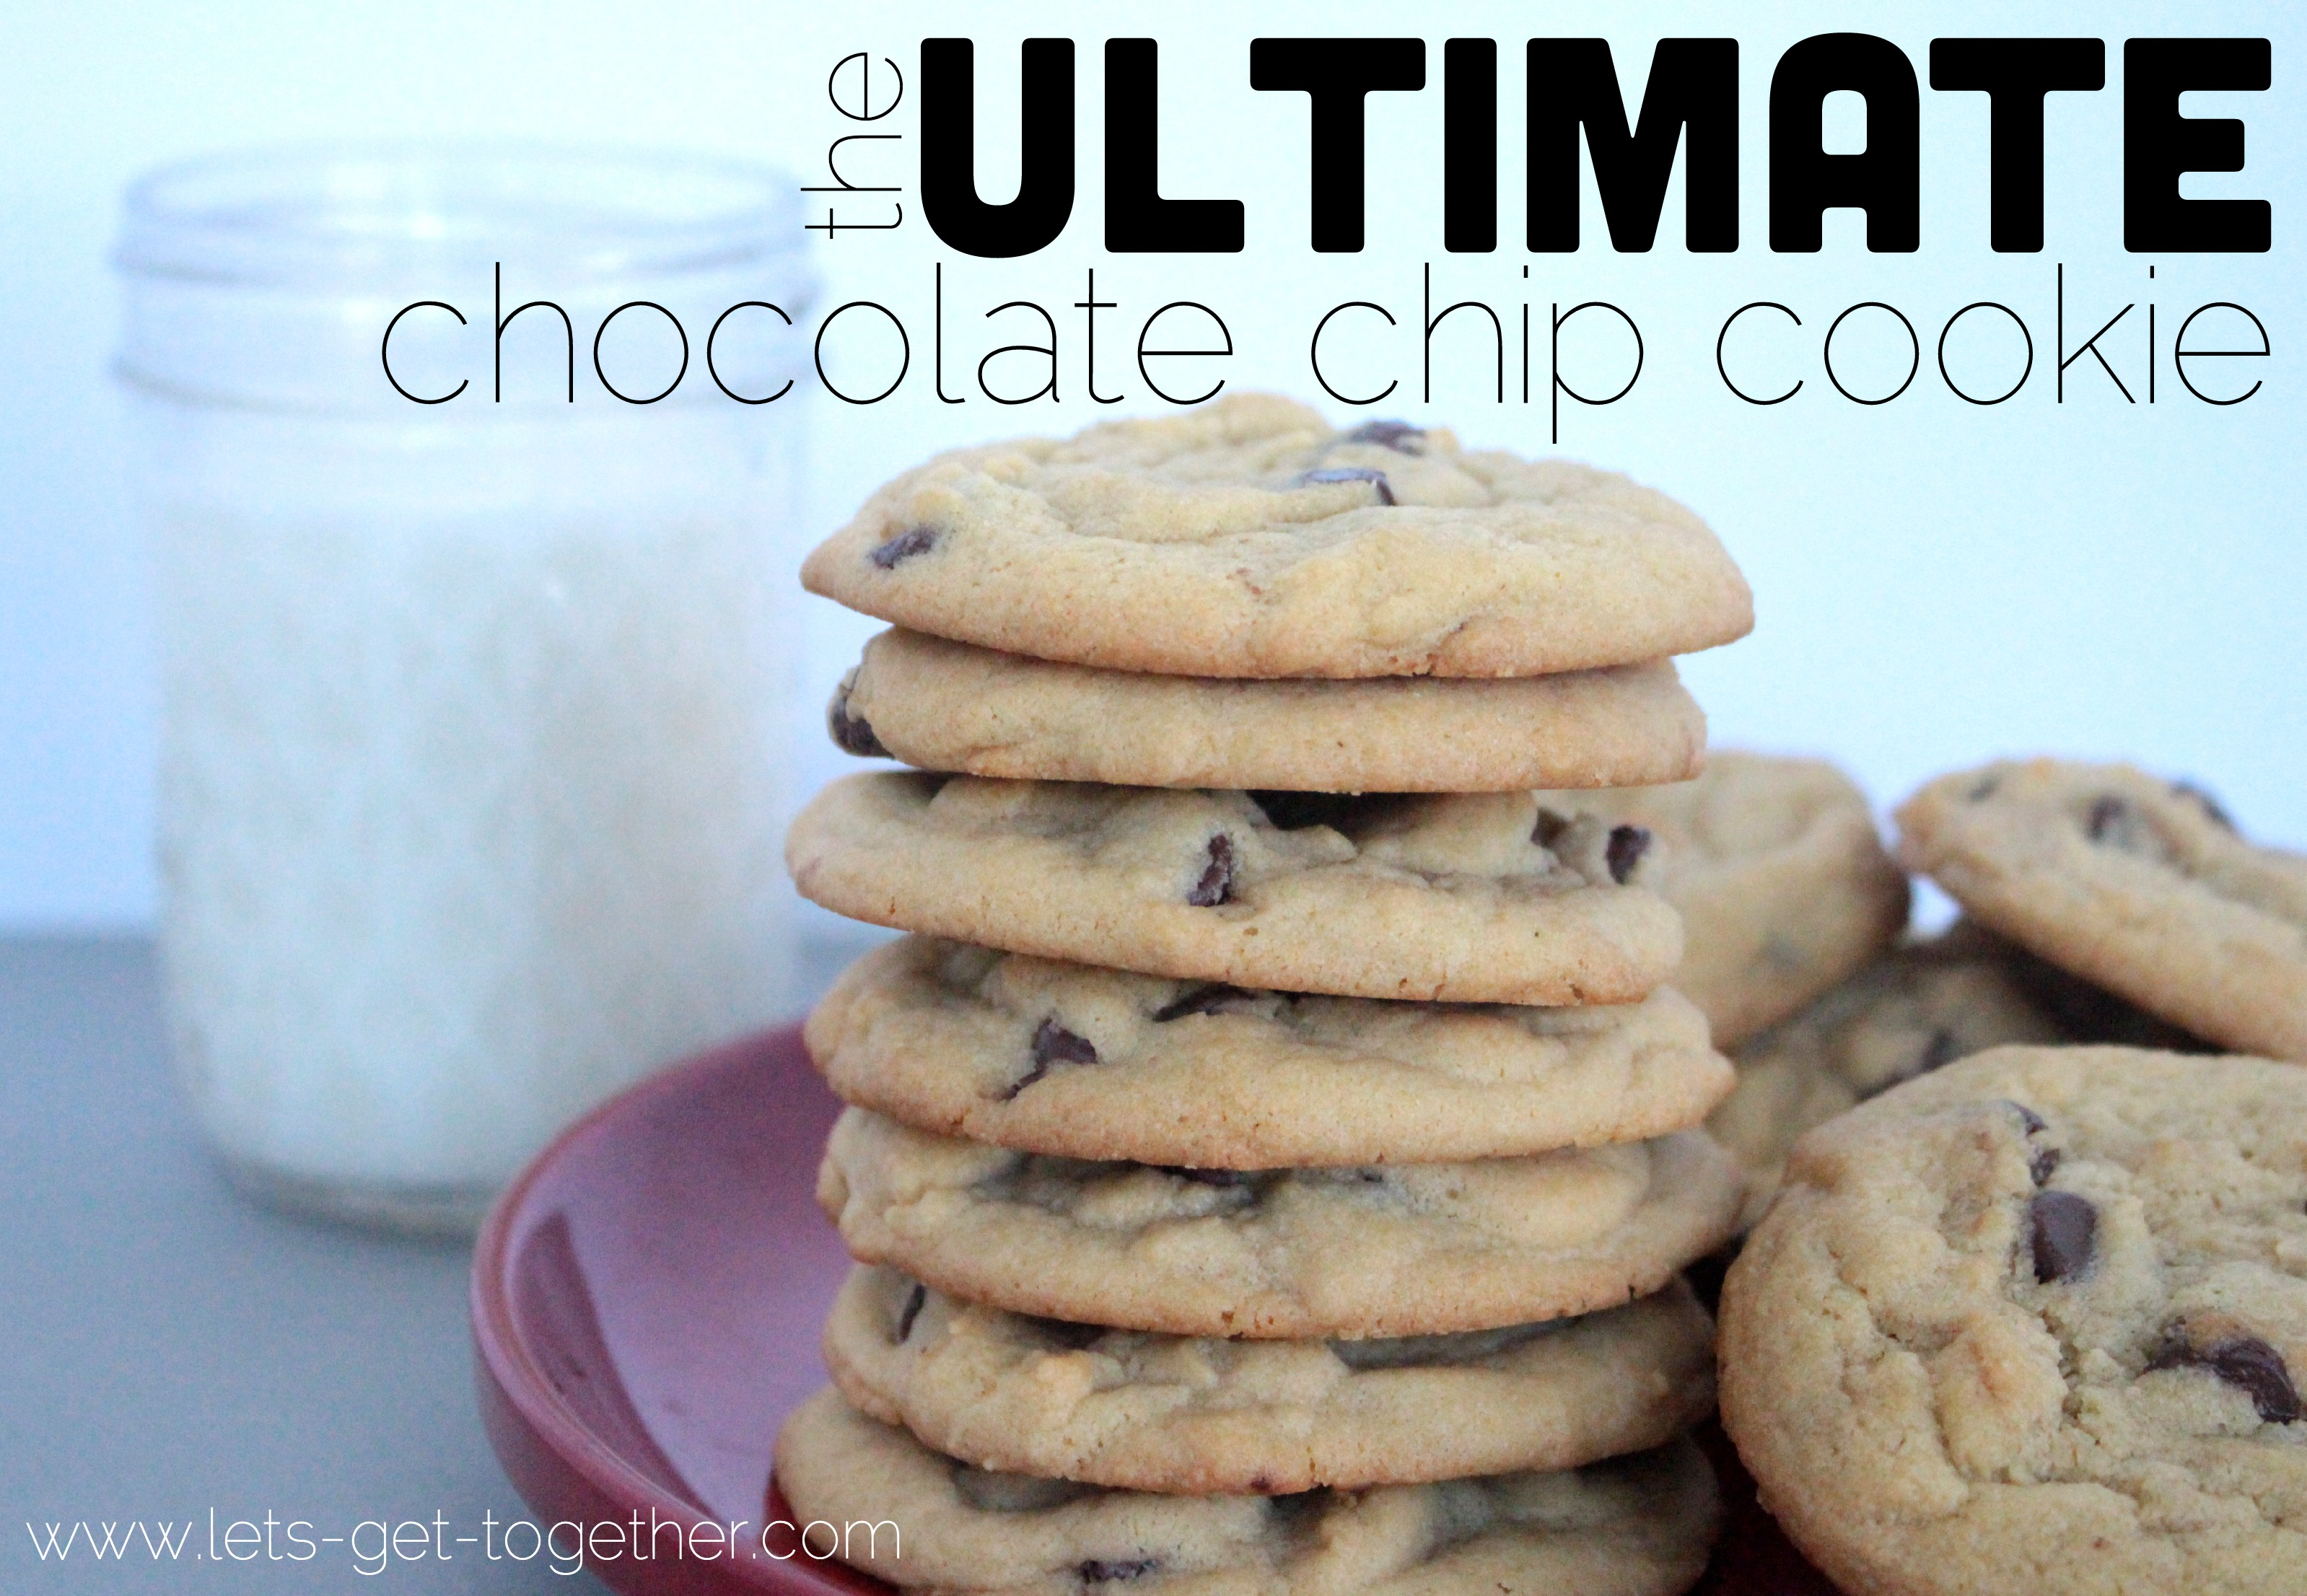 The Ultimate Chocolate Chip Cookie from Let's Get Together